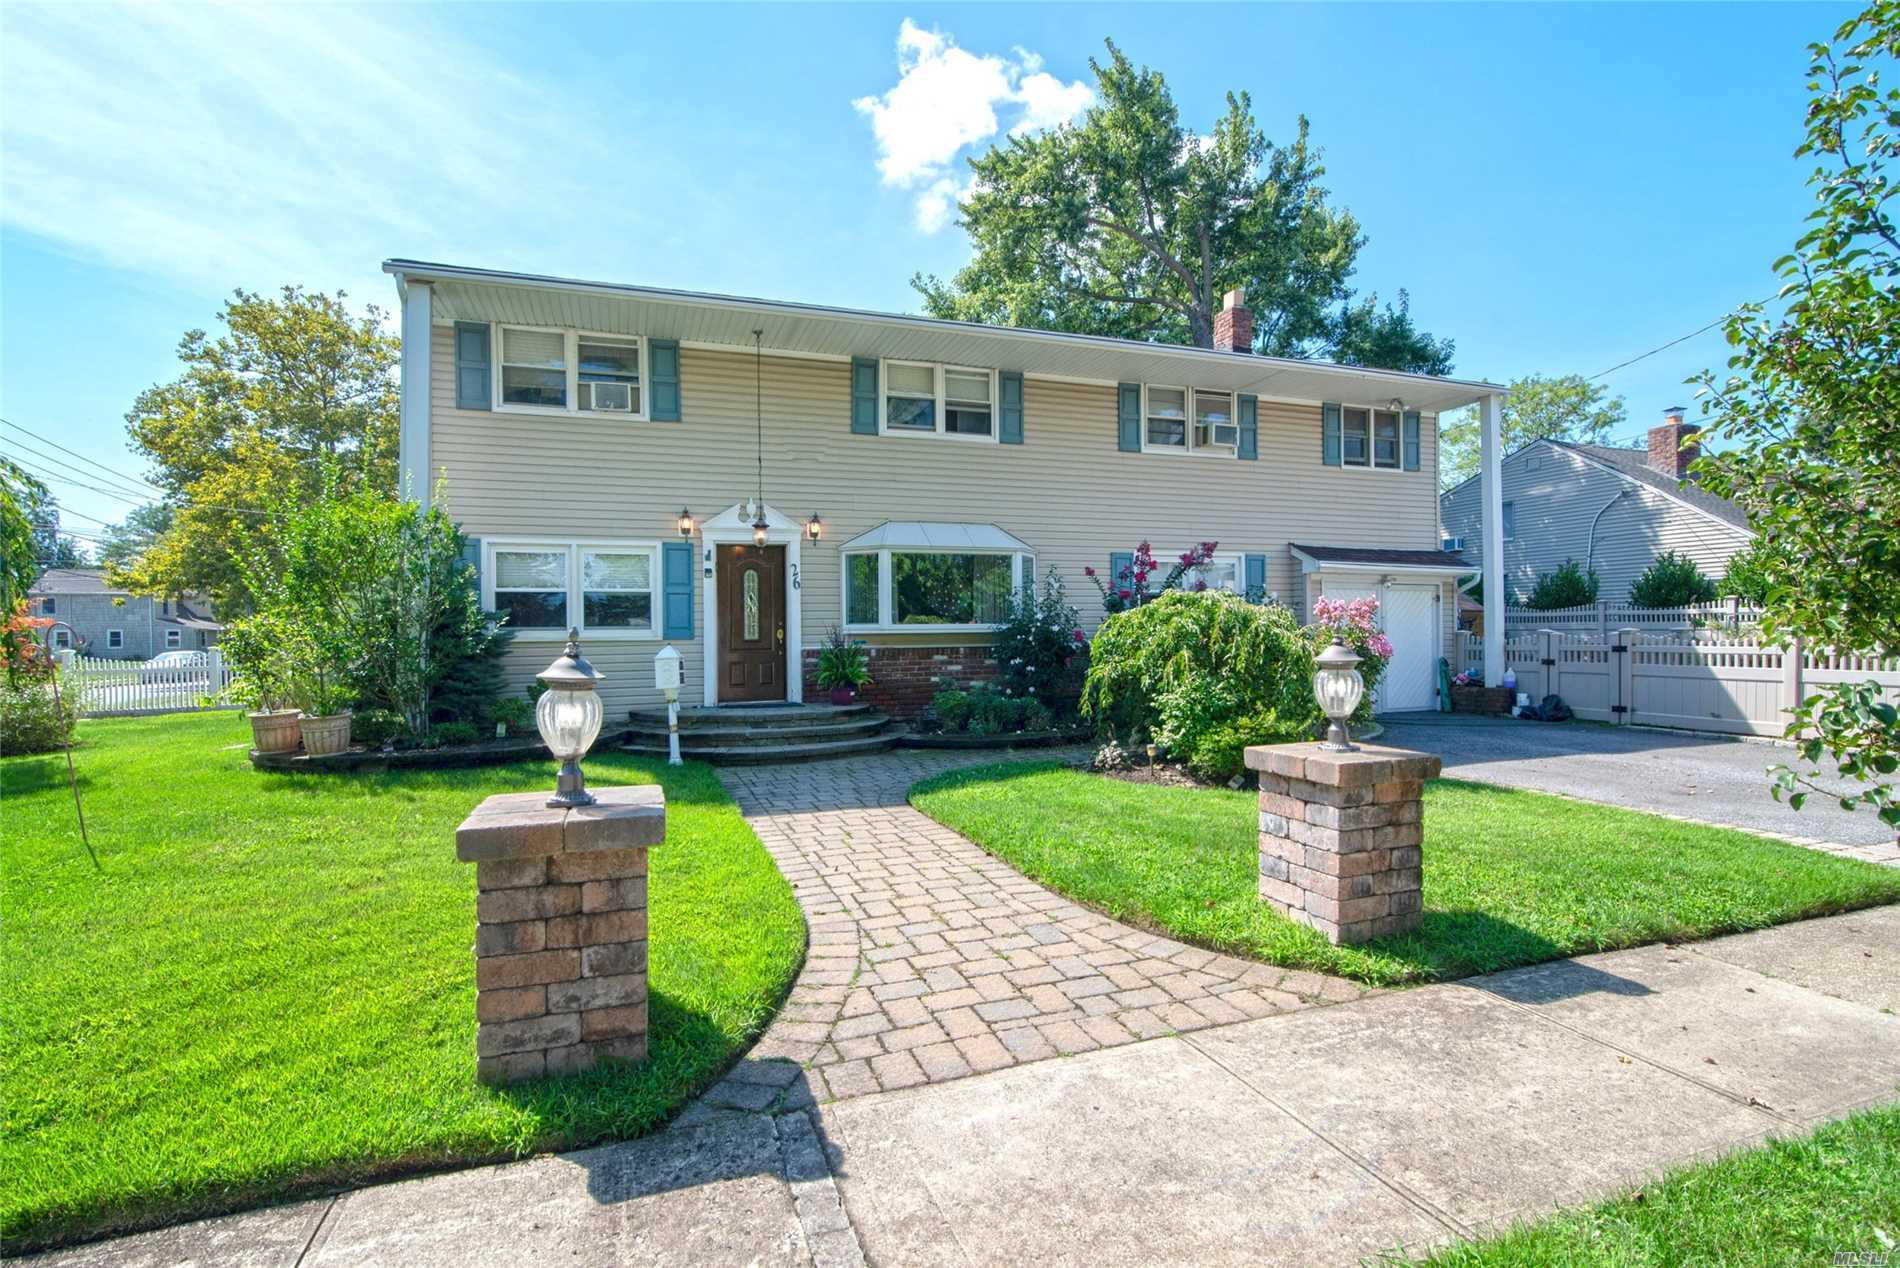 26 Shoreham Rd - Massapequa, New York